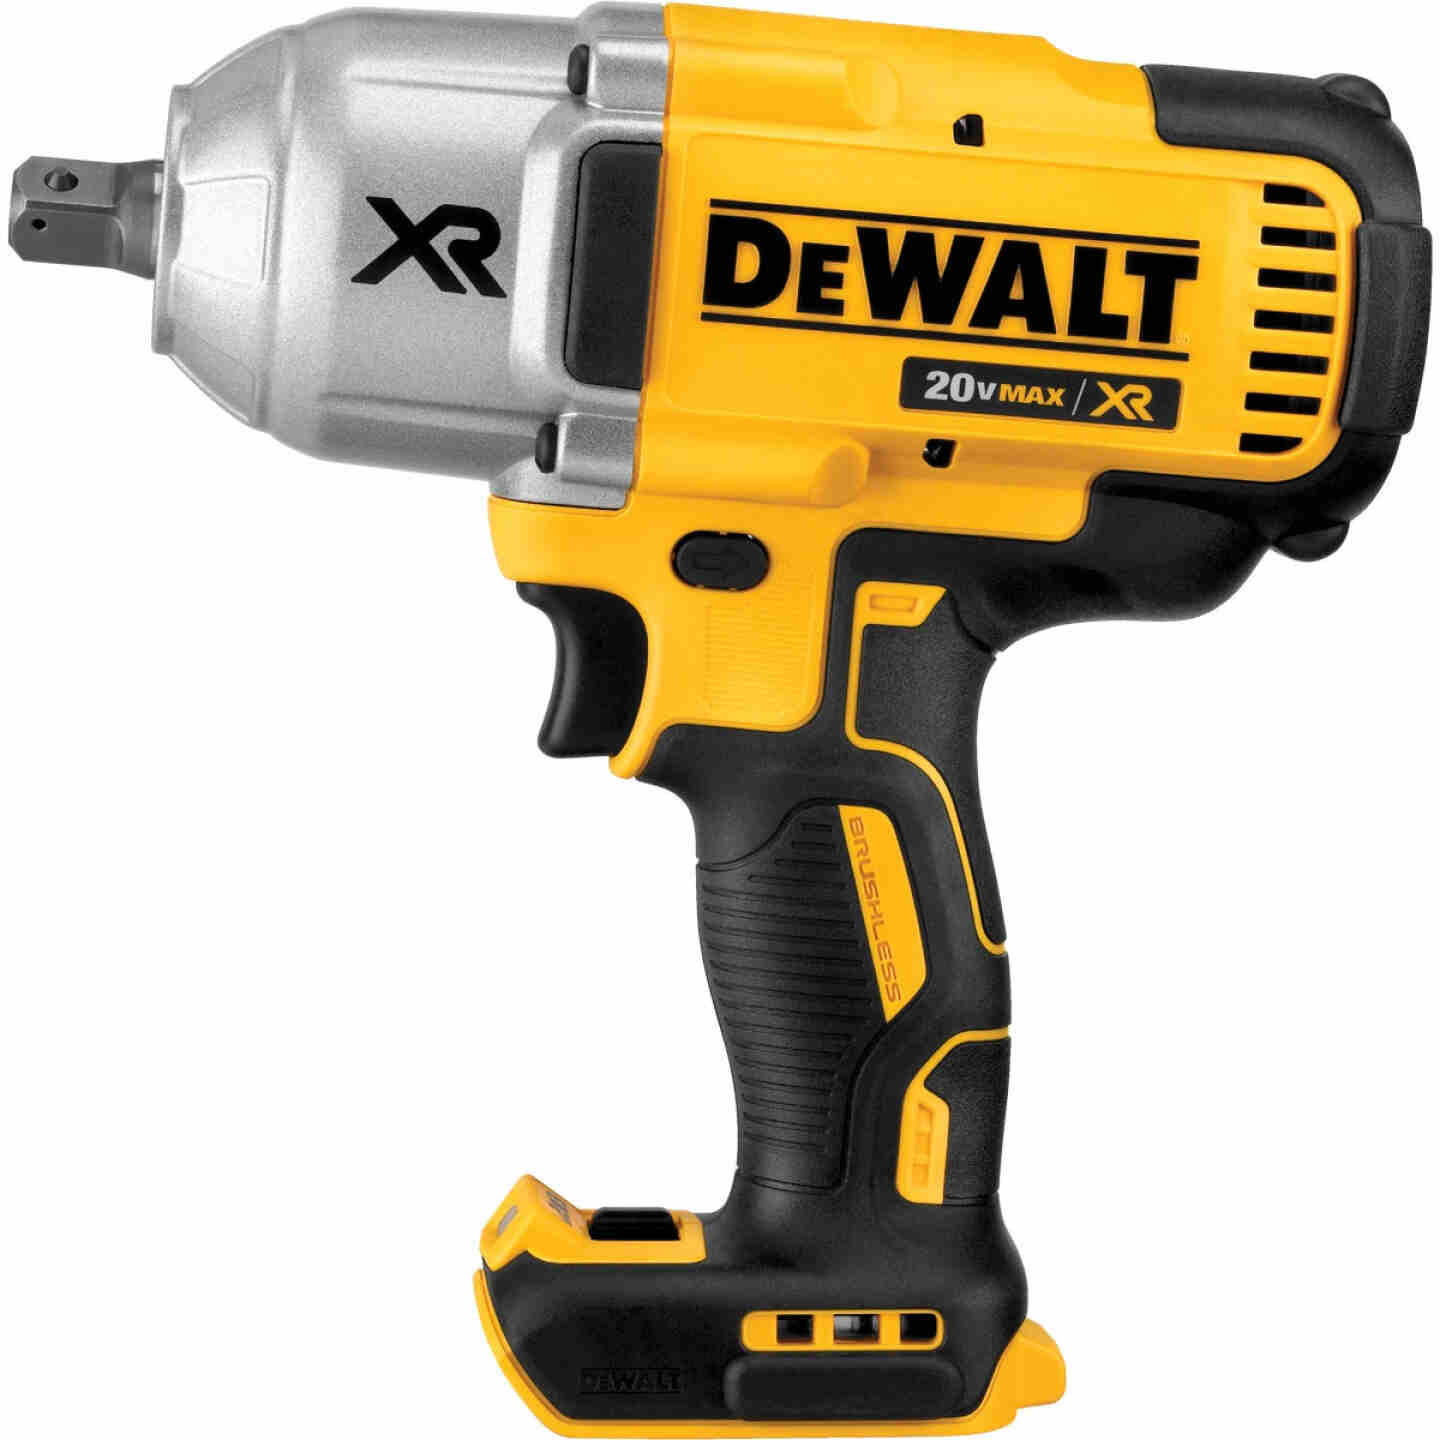 DeWalt 20 Volt MAX XR Lithium-Ion Brushless 1/2 In. Cordless Impact Wrench w/Detent Pin Anvil (Bare Tool) Image 1